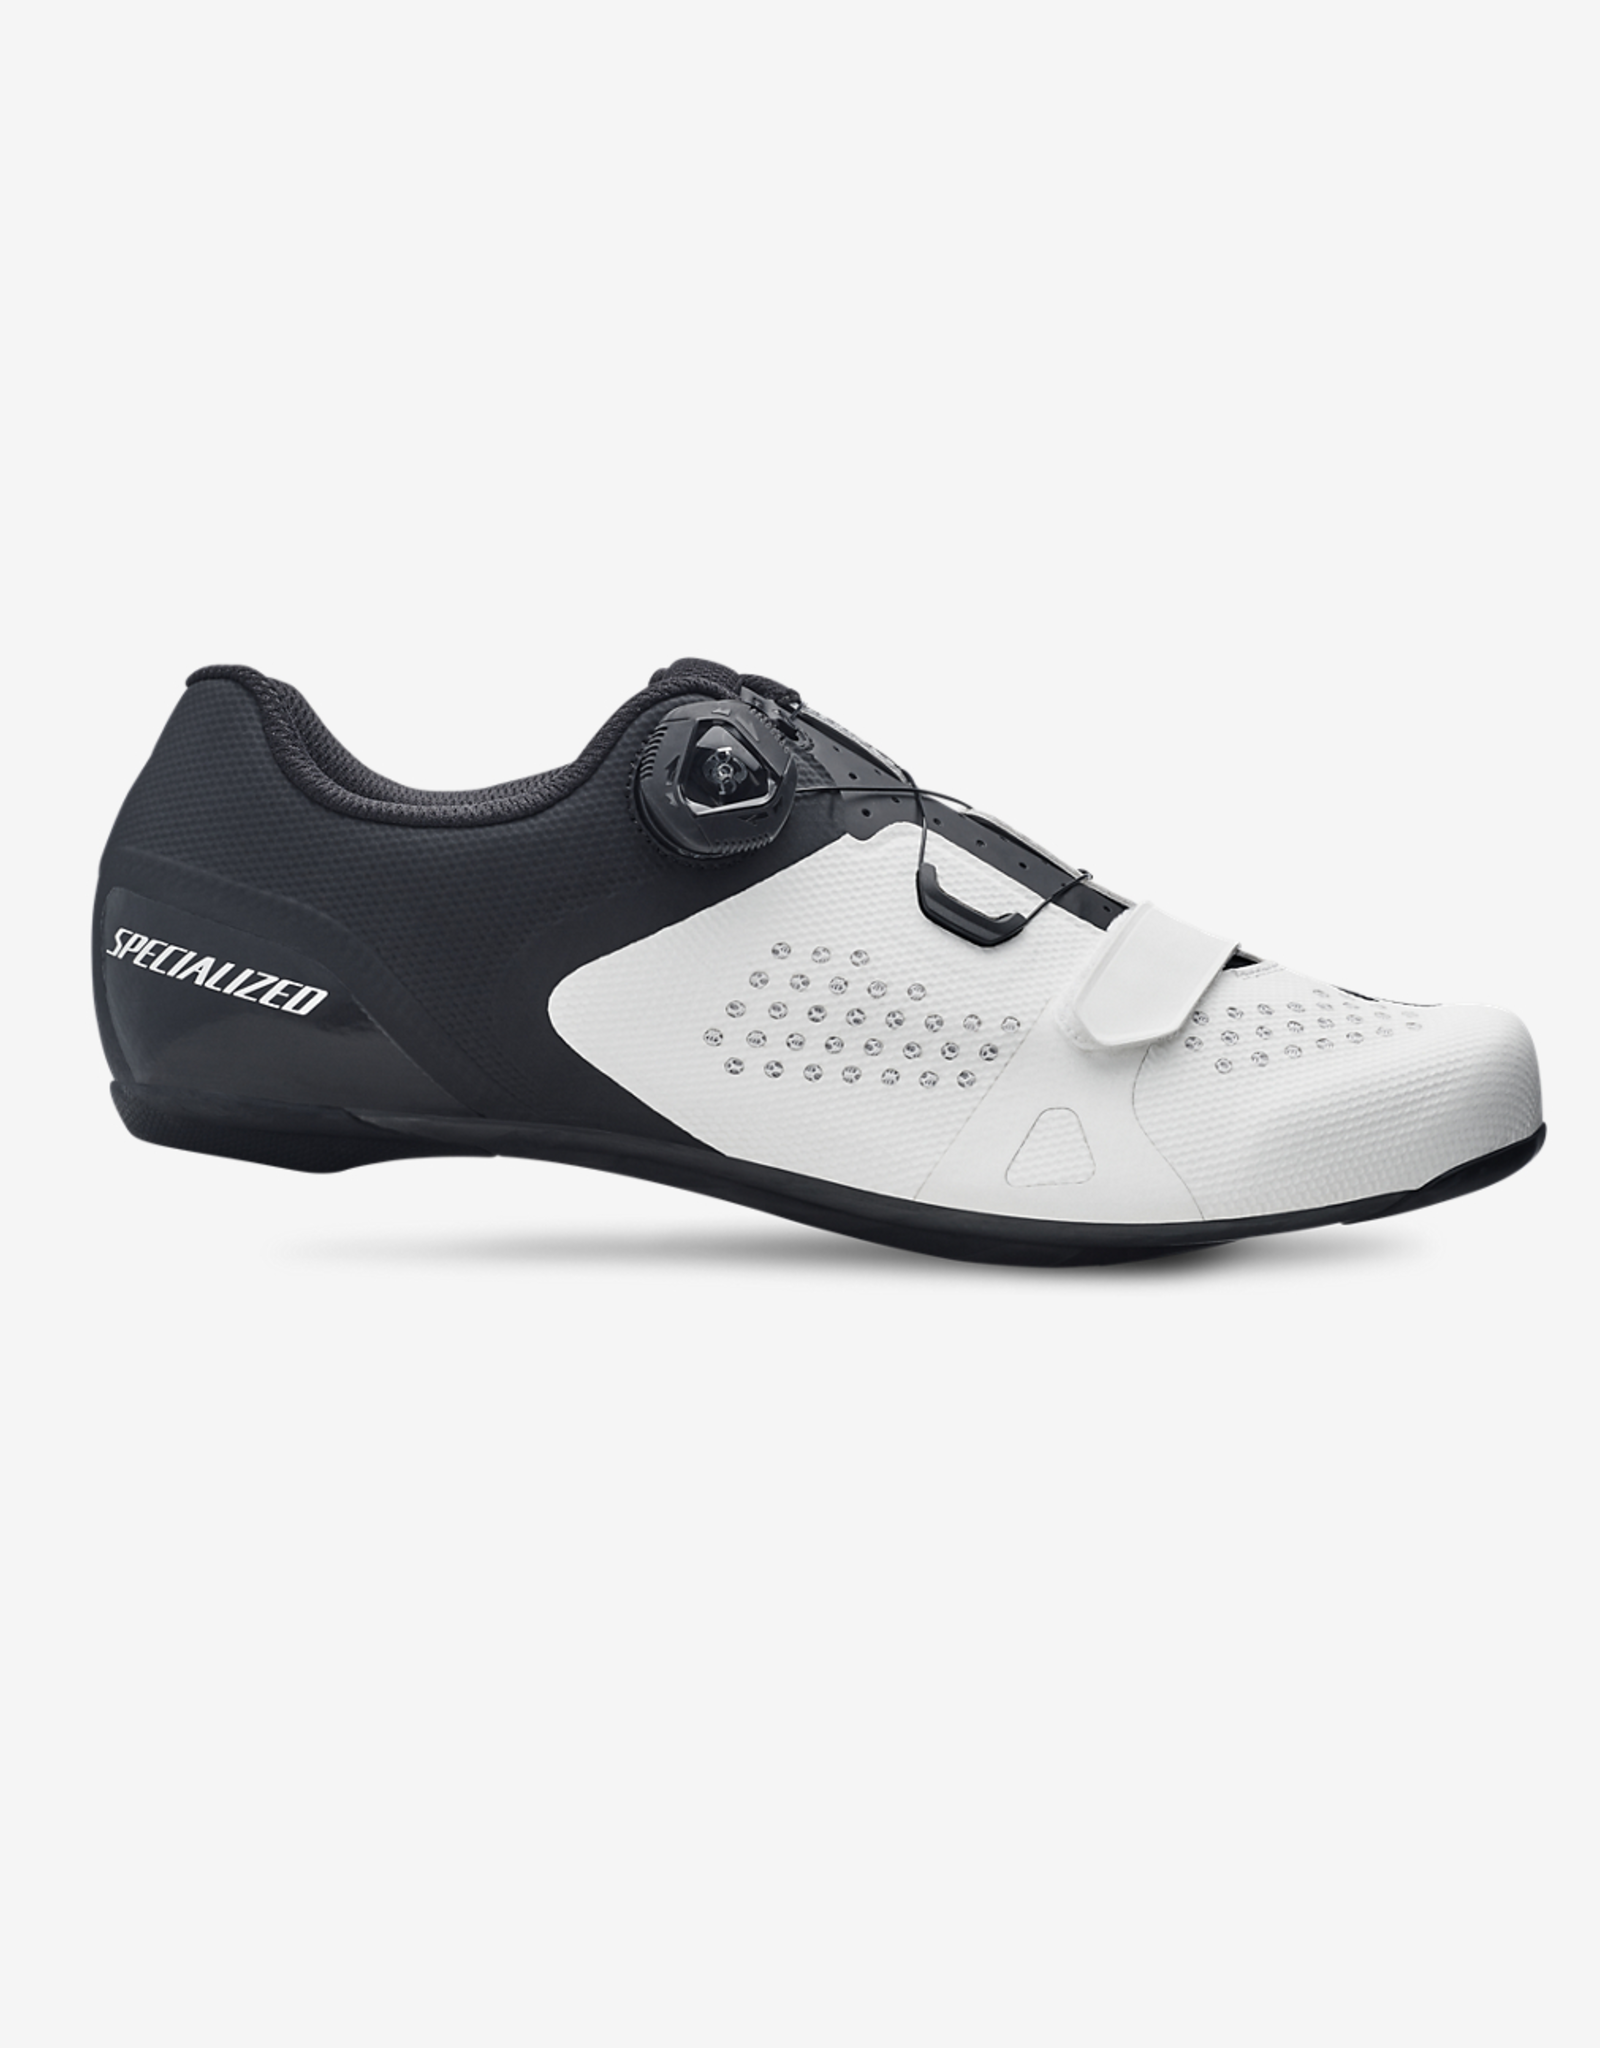 Specialized Shoes - Torch 2.0 Road